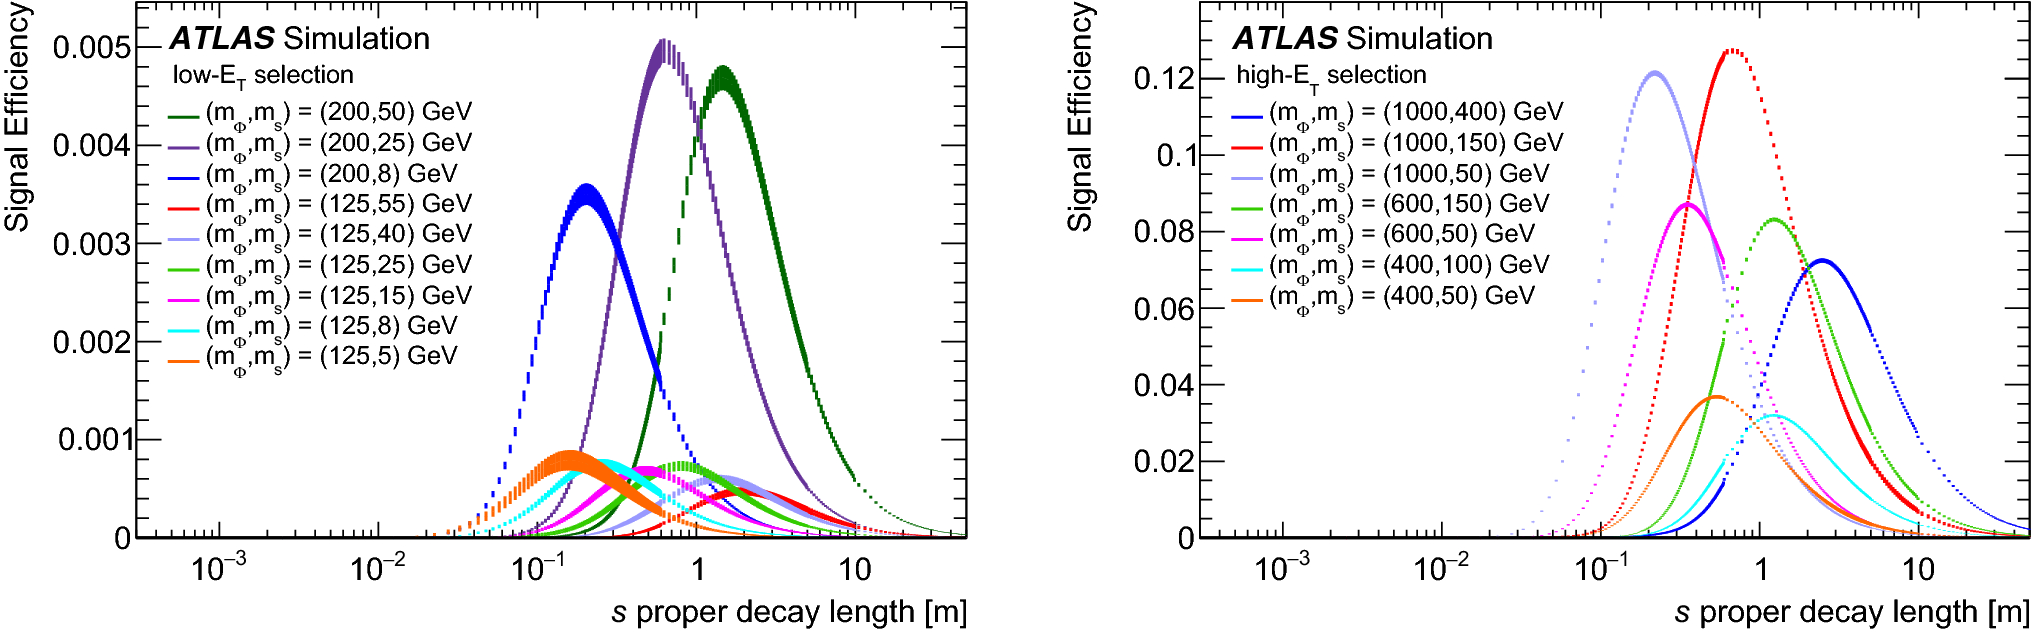 Search for long-lived neutral particles in pp collisions at